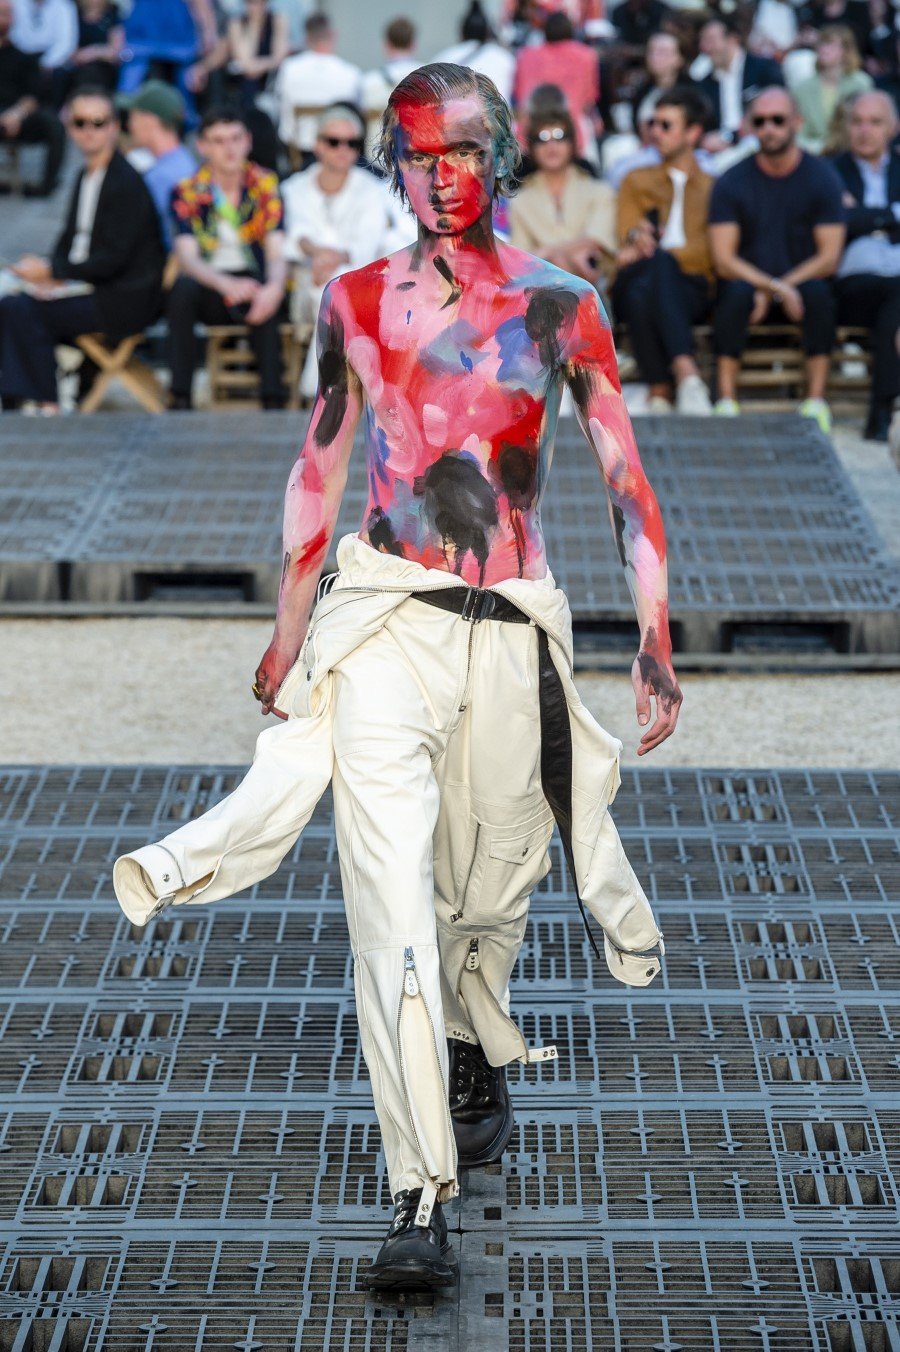 Alexander McQueen Spring/Summer 2019 - Paris Fashion Week